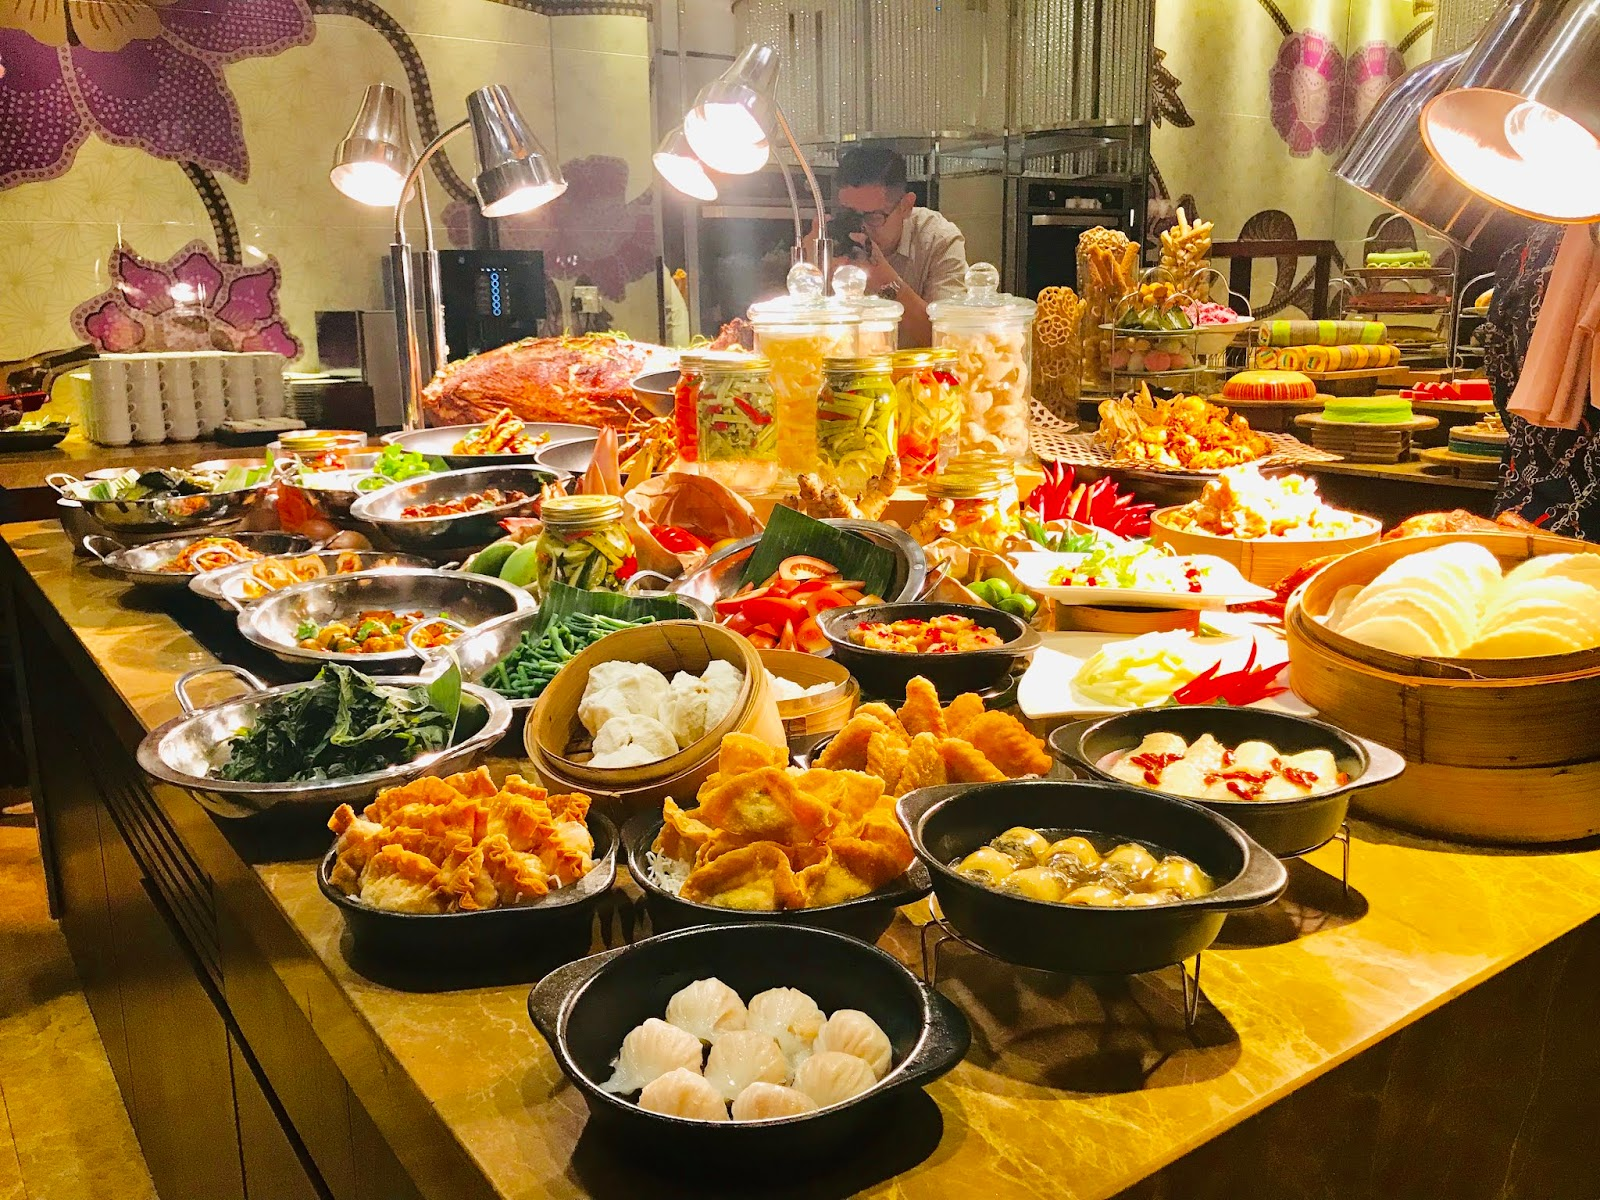 HYATT REGENCY KINABALU HIGHLIGHTS  CHEFS' FAMILY RECIPES DISHES IN RAMADAN BUFFET